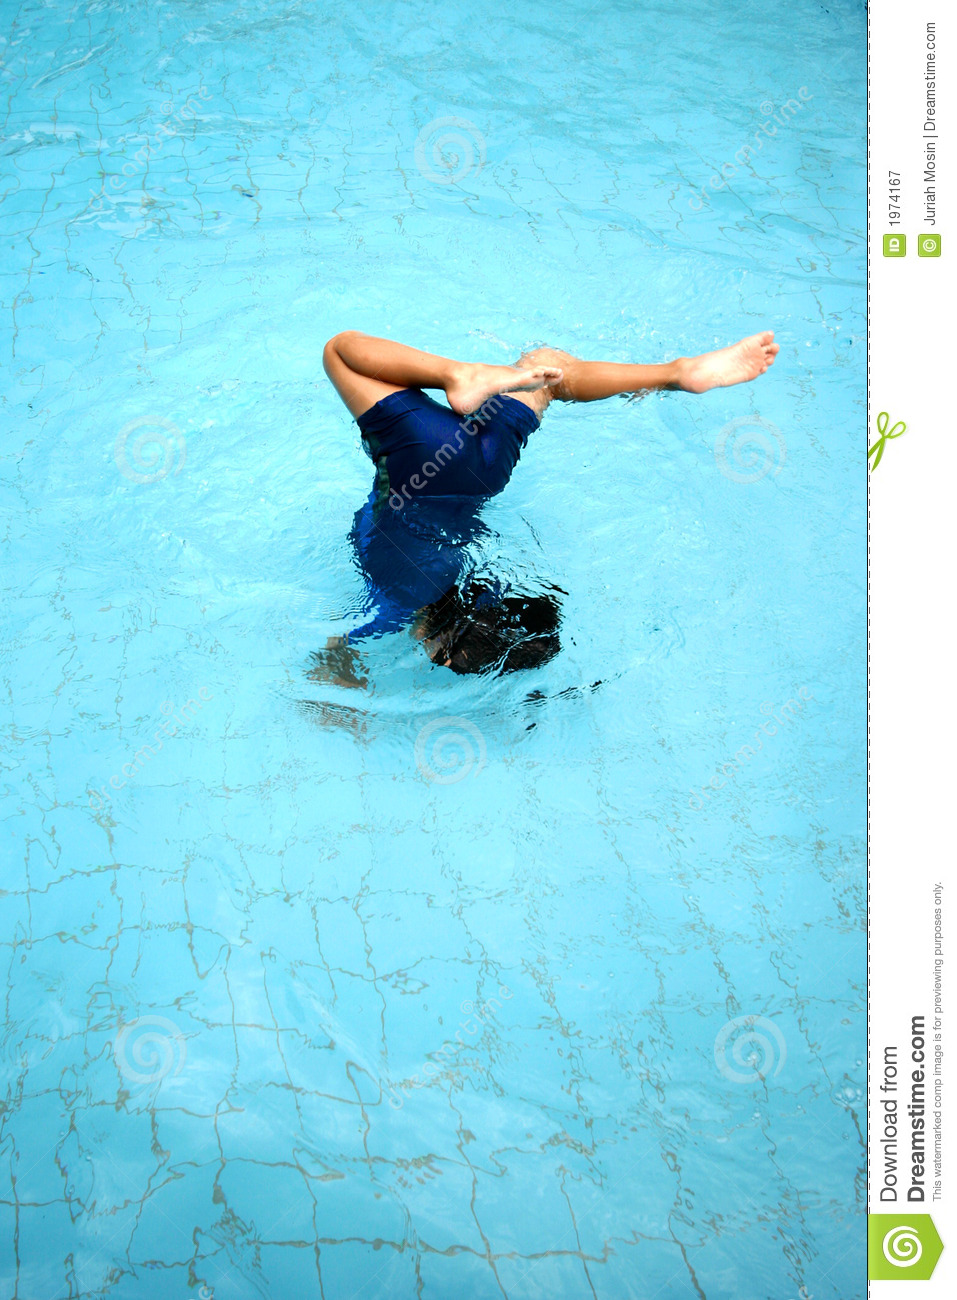 A young boy doing a somersault in the swimming pool American home shield swimming pool coverage